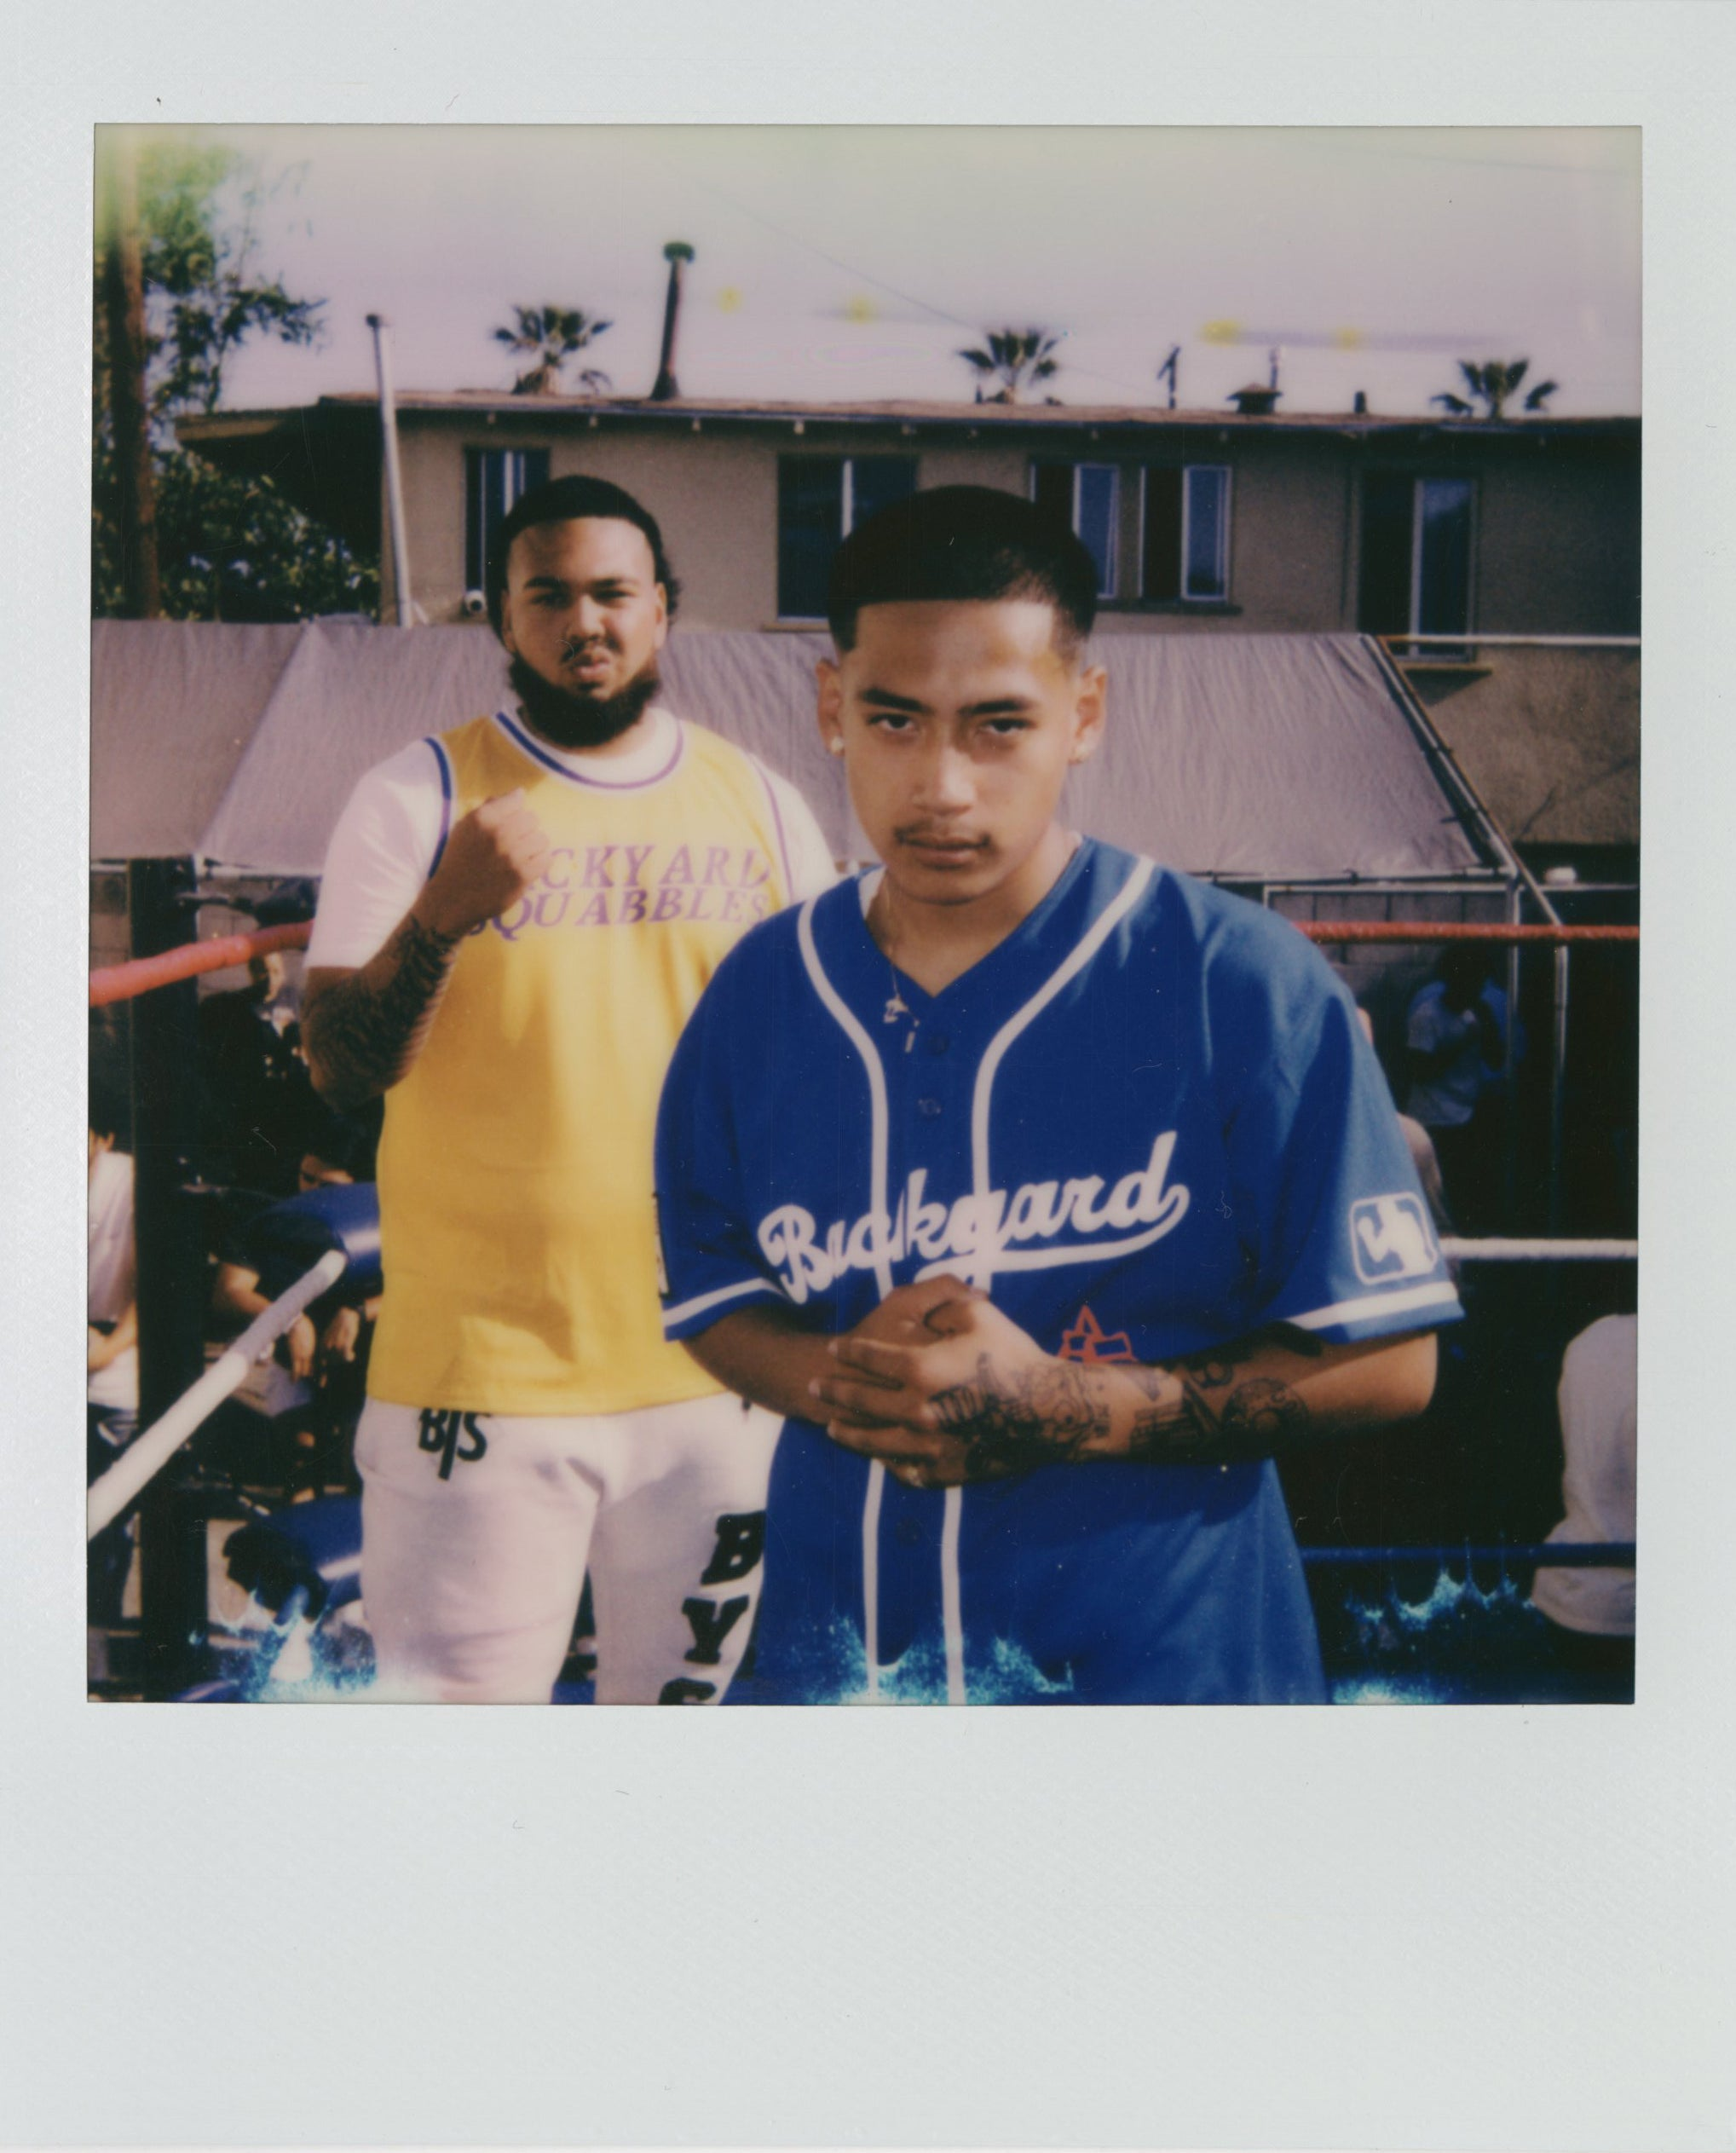 A polaroid picture of two men in backyard squabble gear standing in an outdoor boxing ring